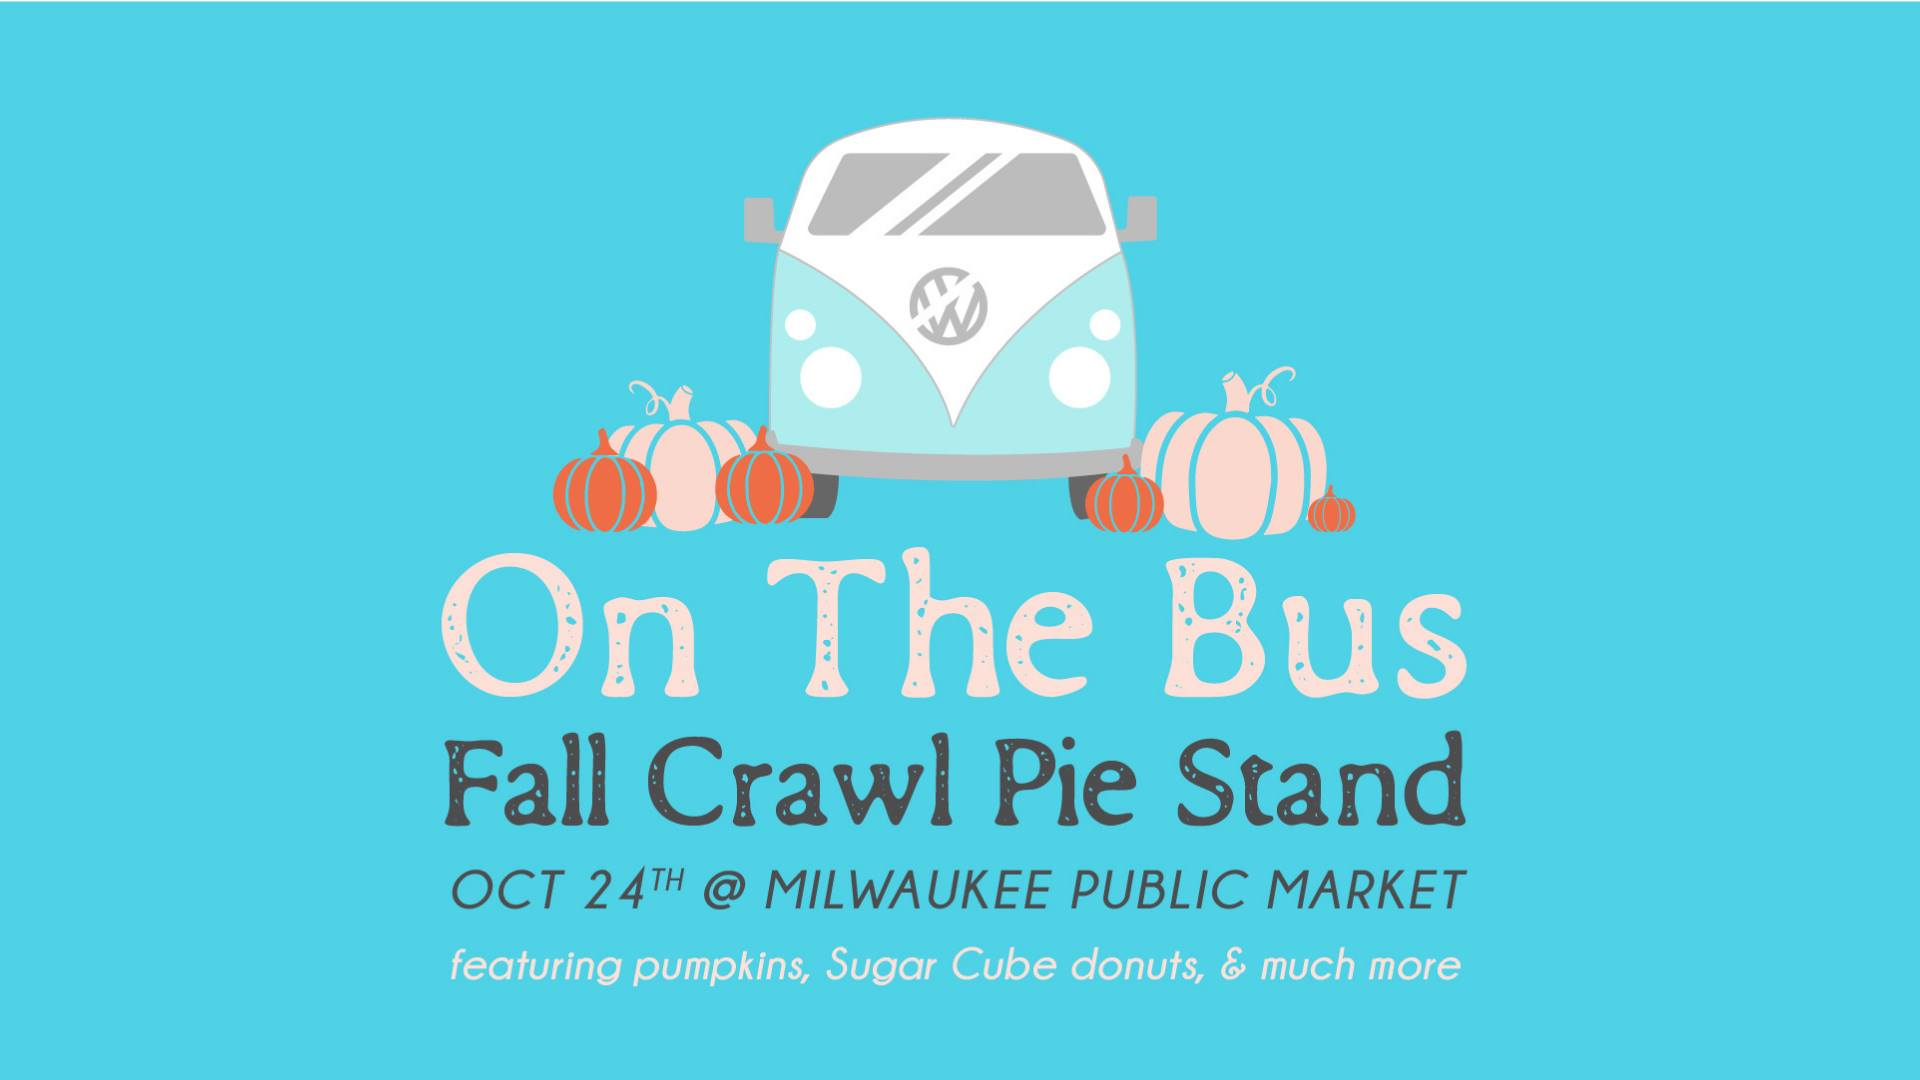 On the Bus Fall Crawl Pie Stand